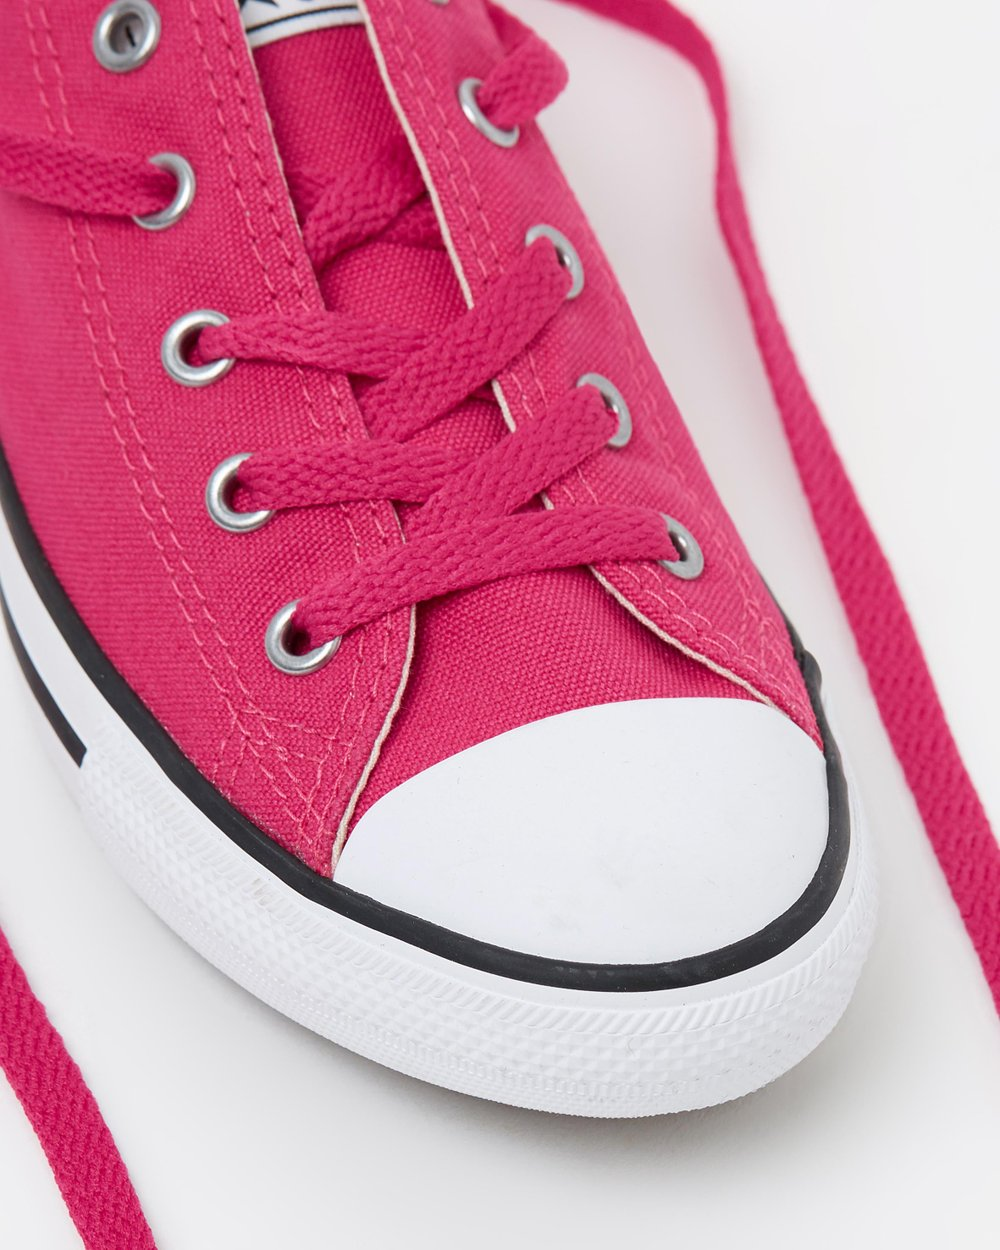 3e98c1c1f407 Chuck Taylor All Star Dainty Ox - Women s by Converse Online